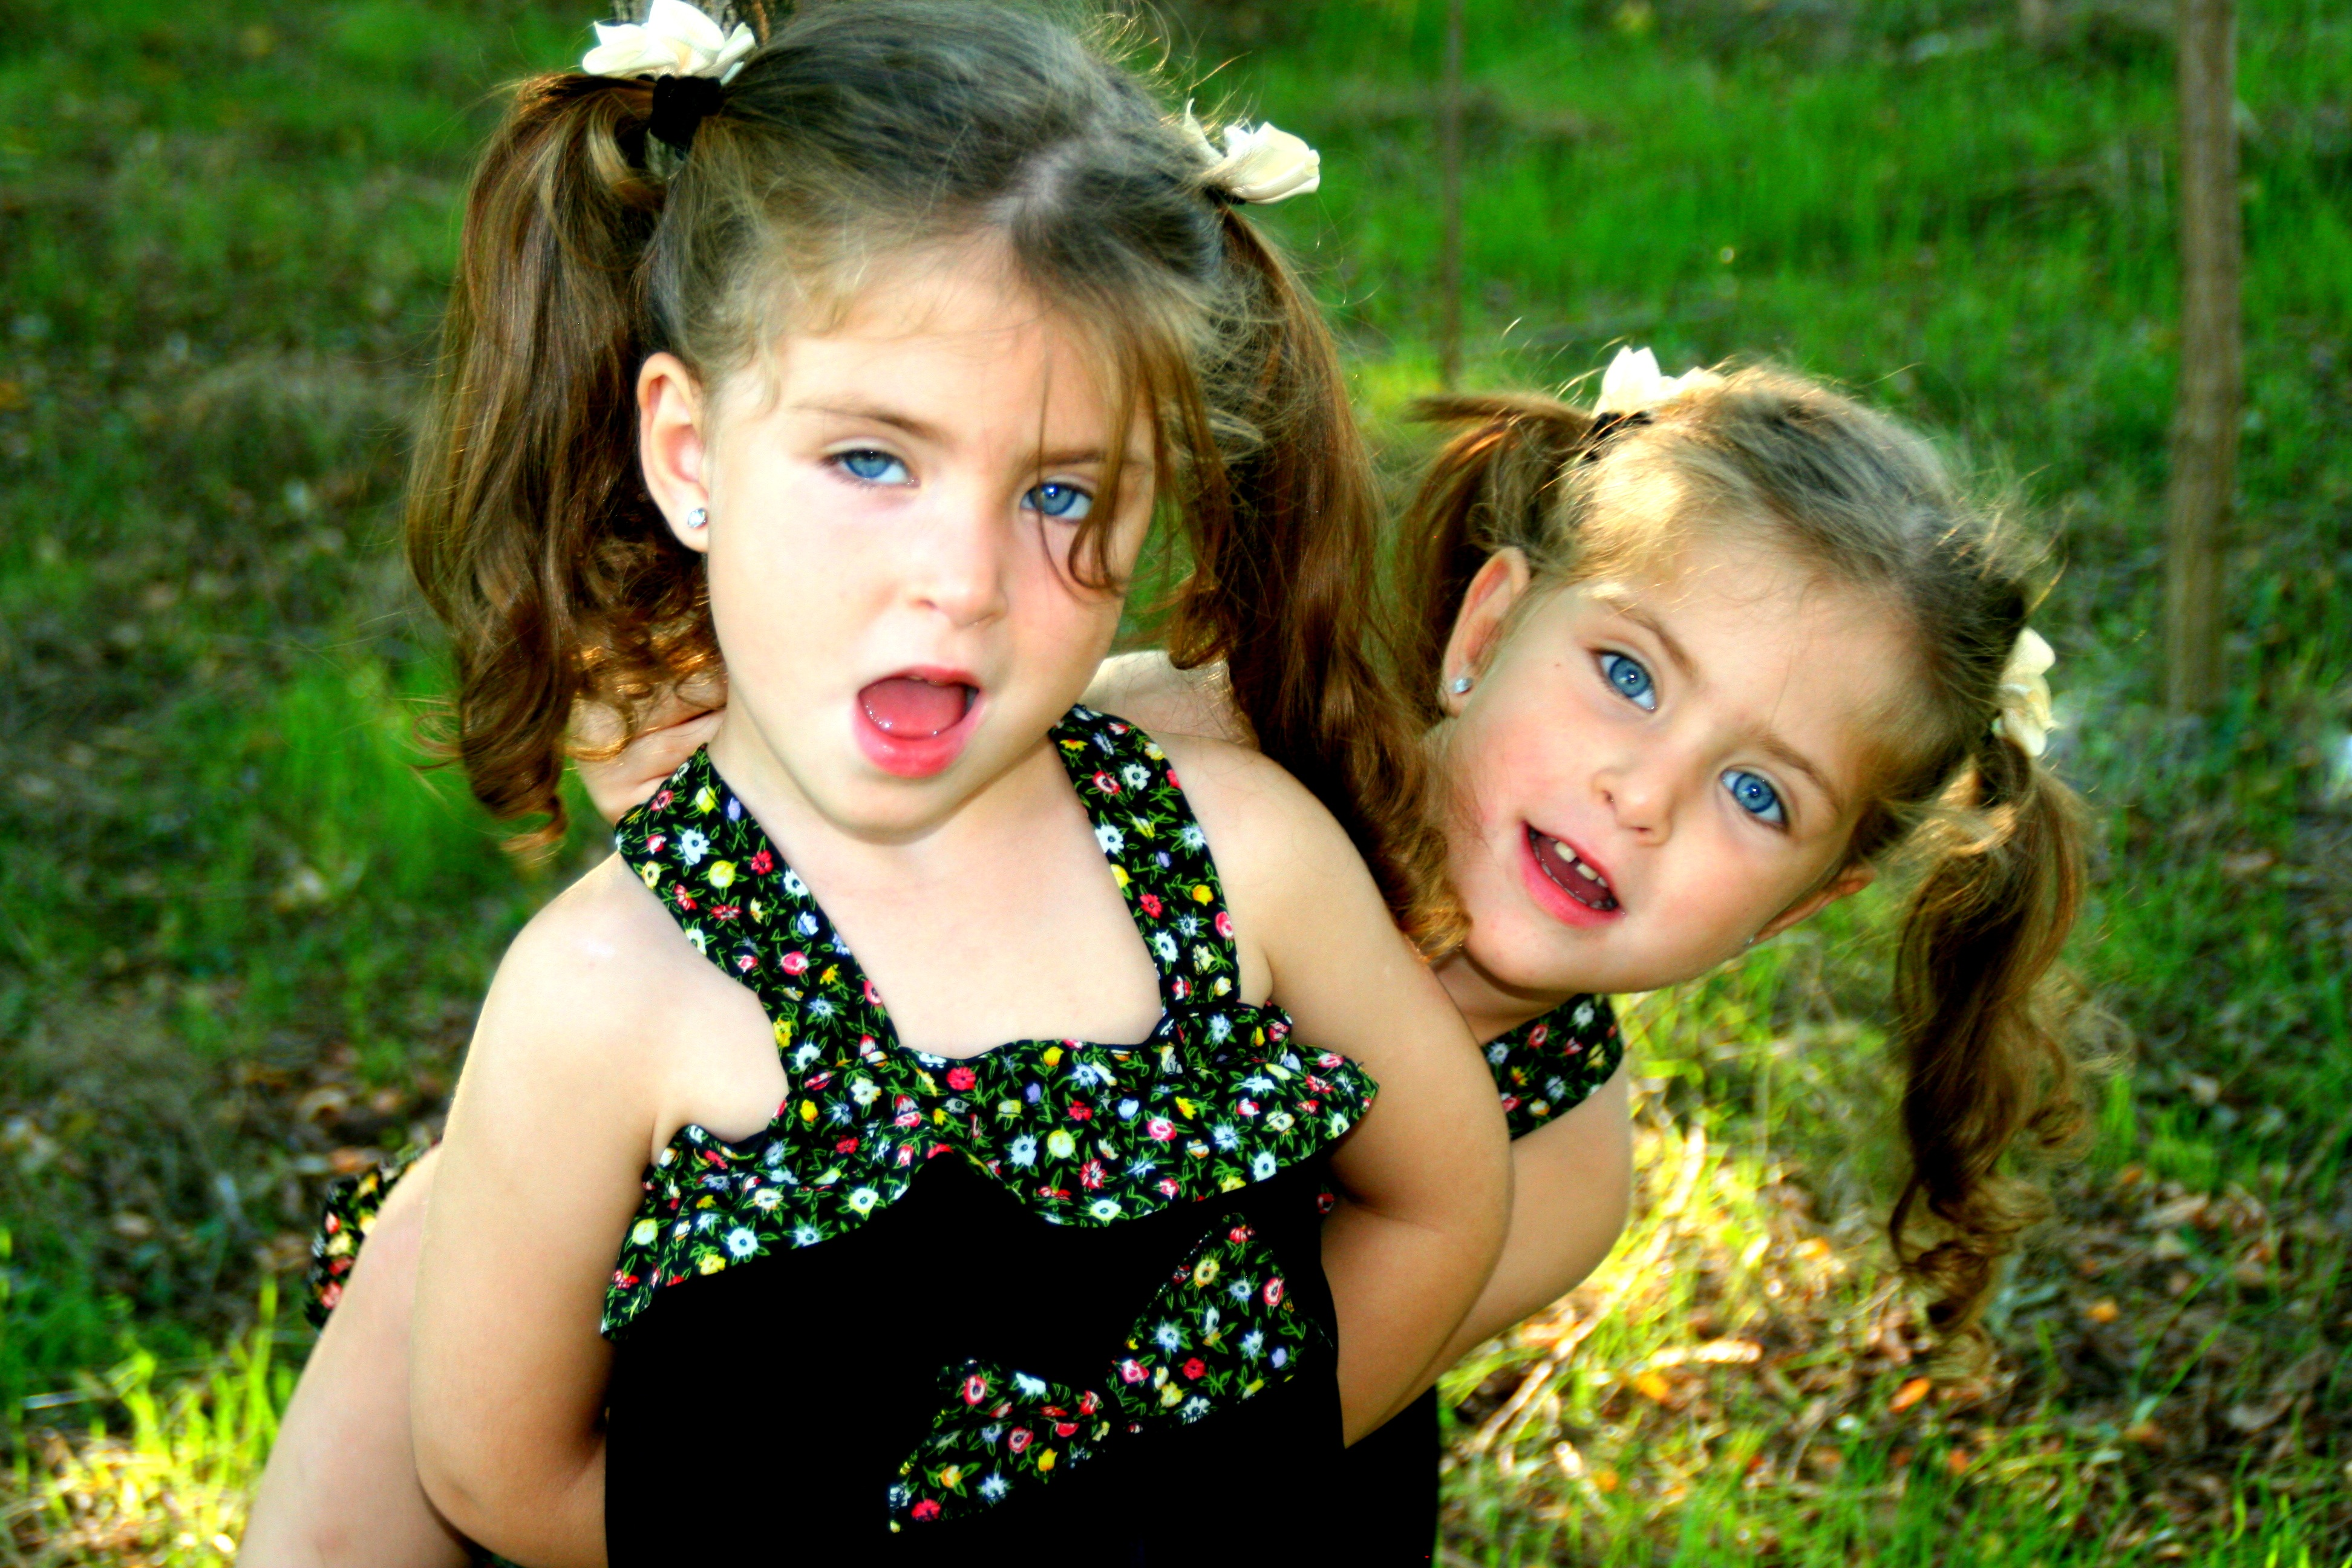 Funny twin sisters free image download